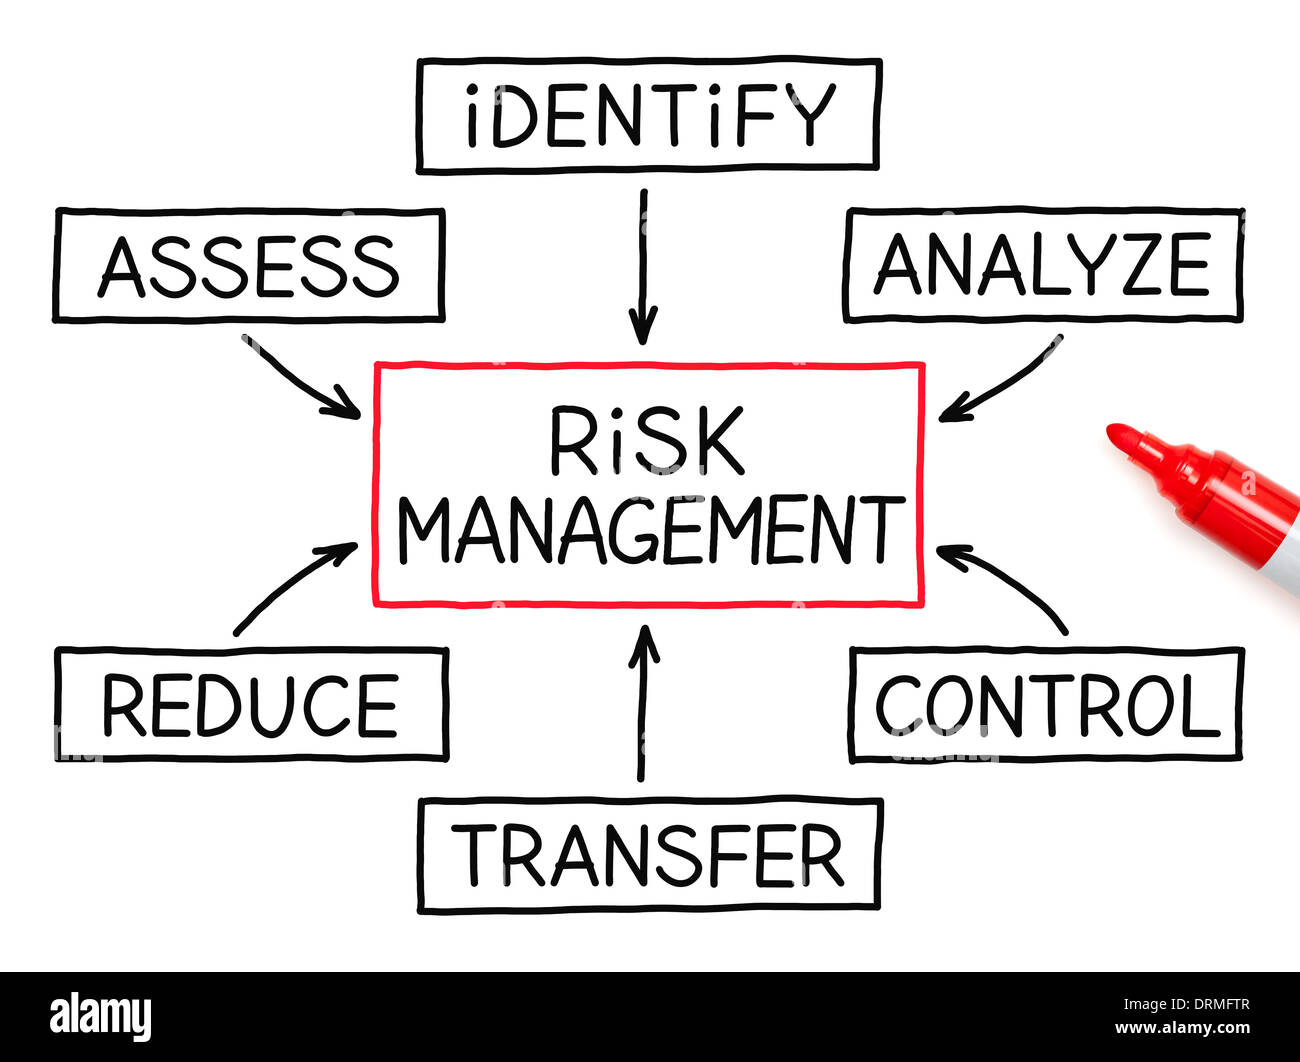 Risk Management and Insurance research paper writers cheap